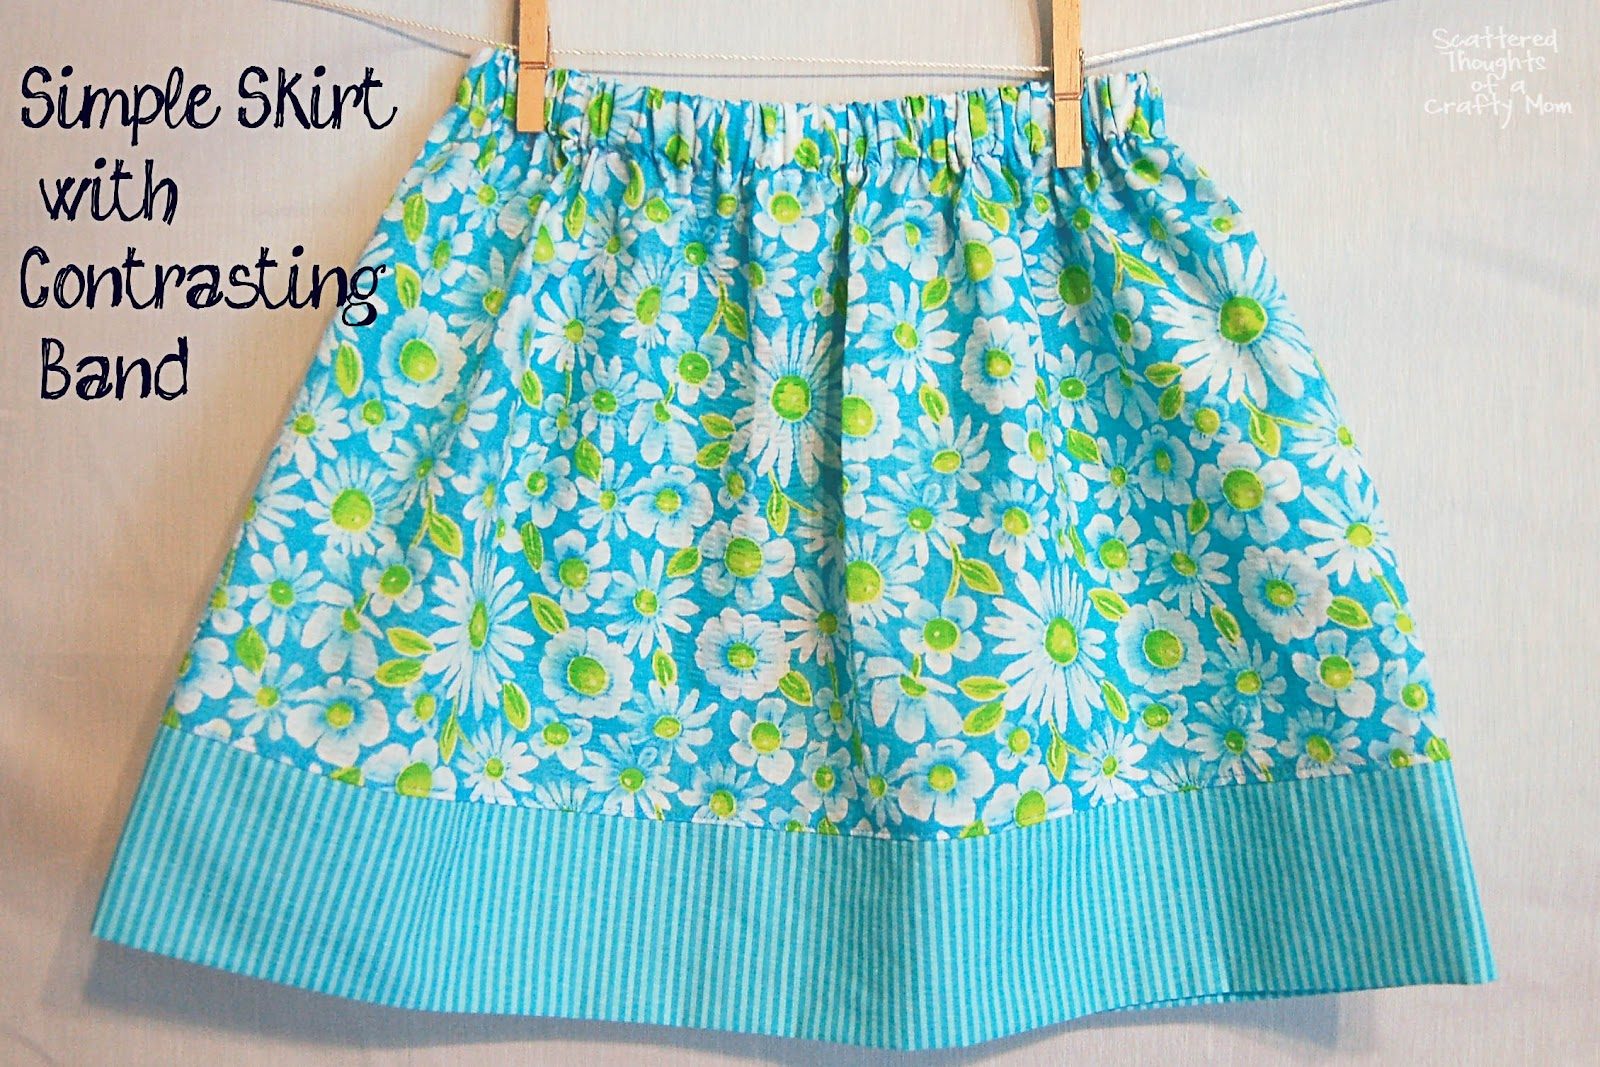 10c70e12e417 Simple Skirt Tutorial with Options for 3 Different Looks - Scattered ...